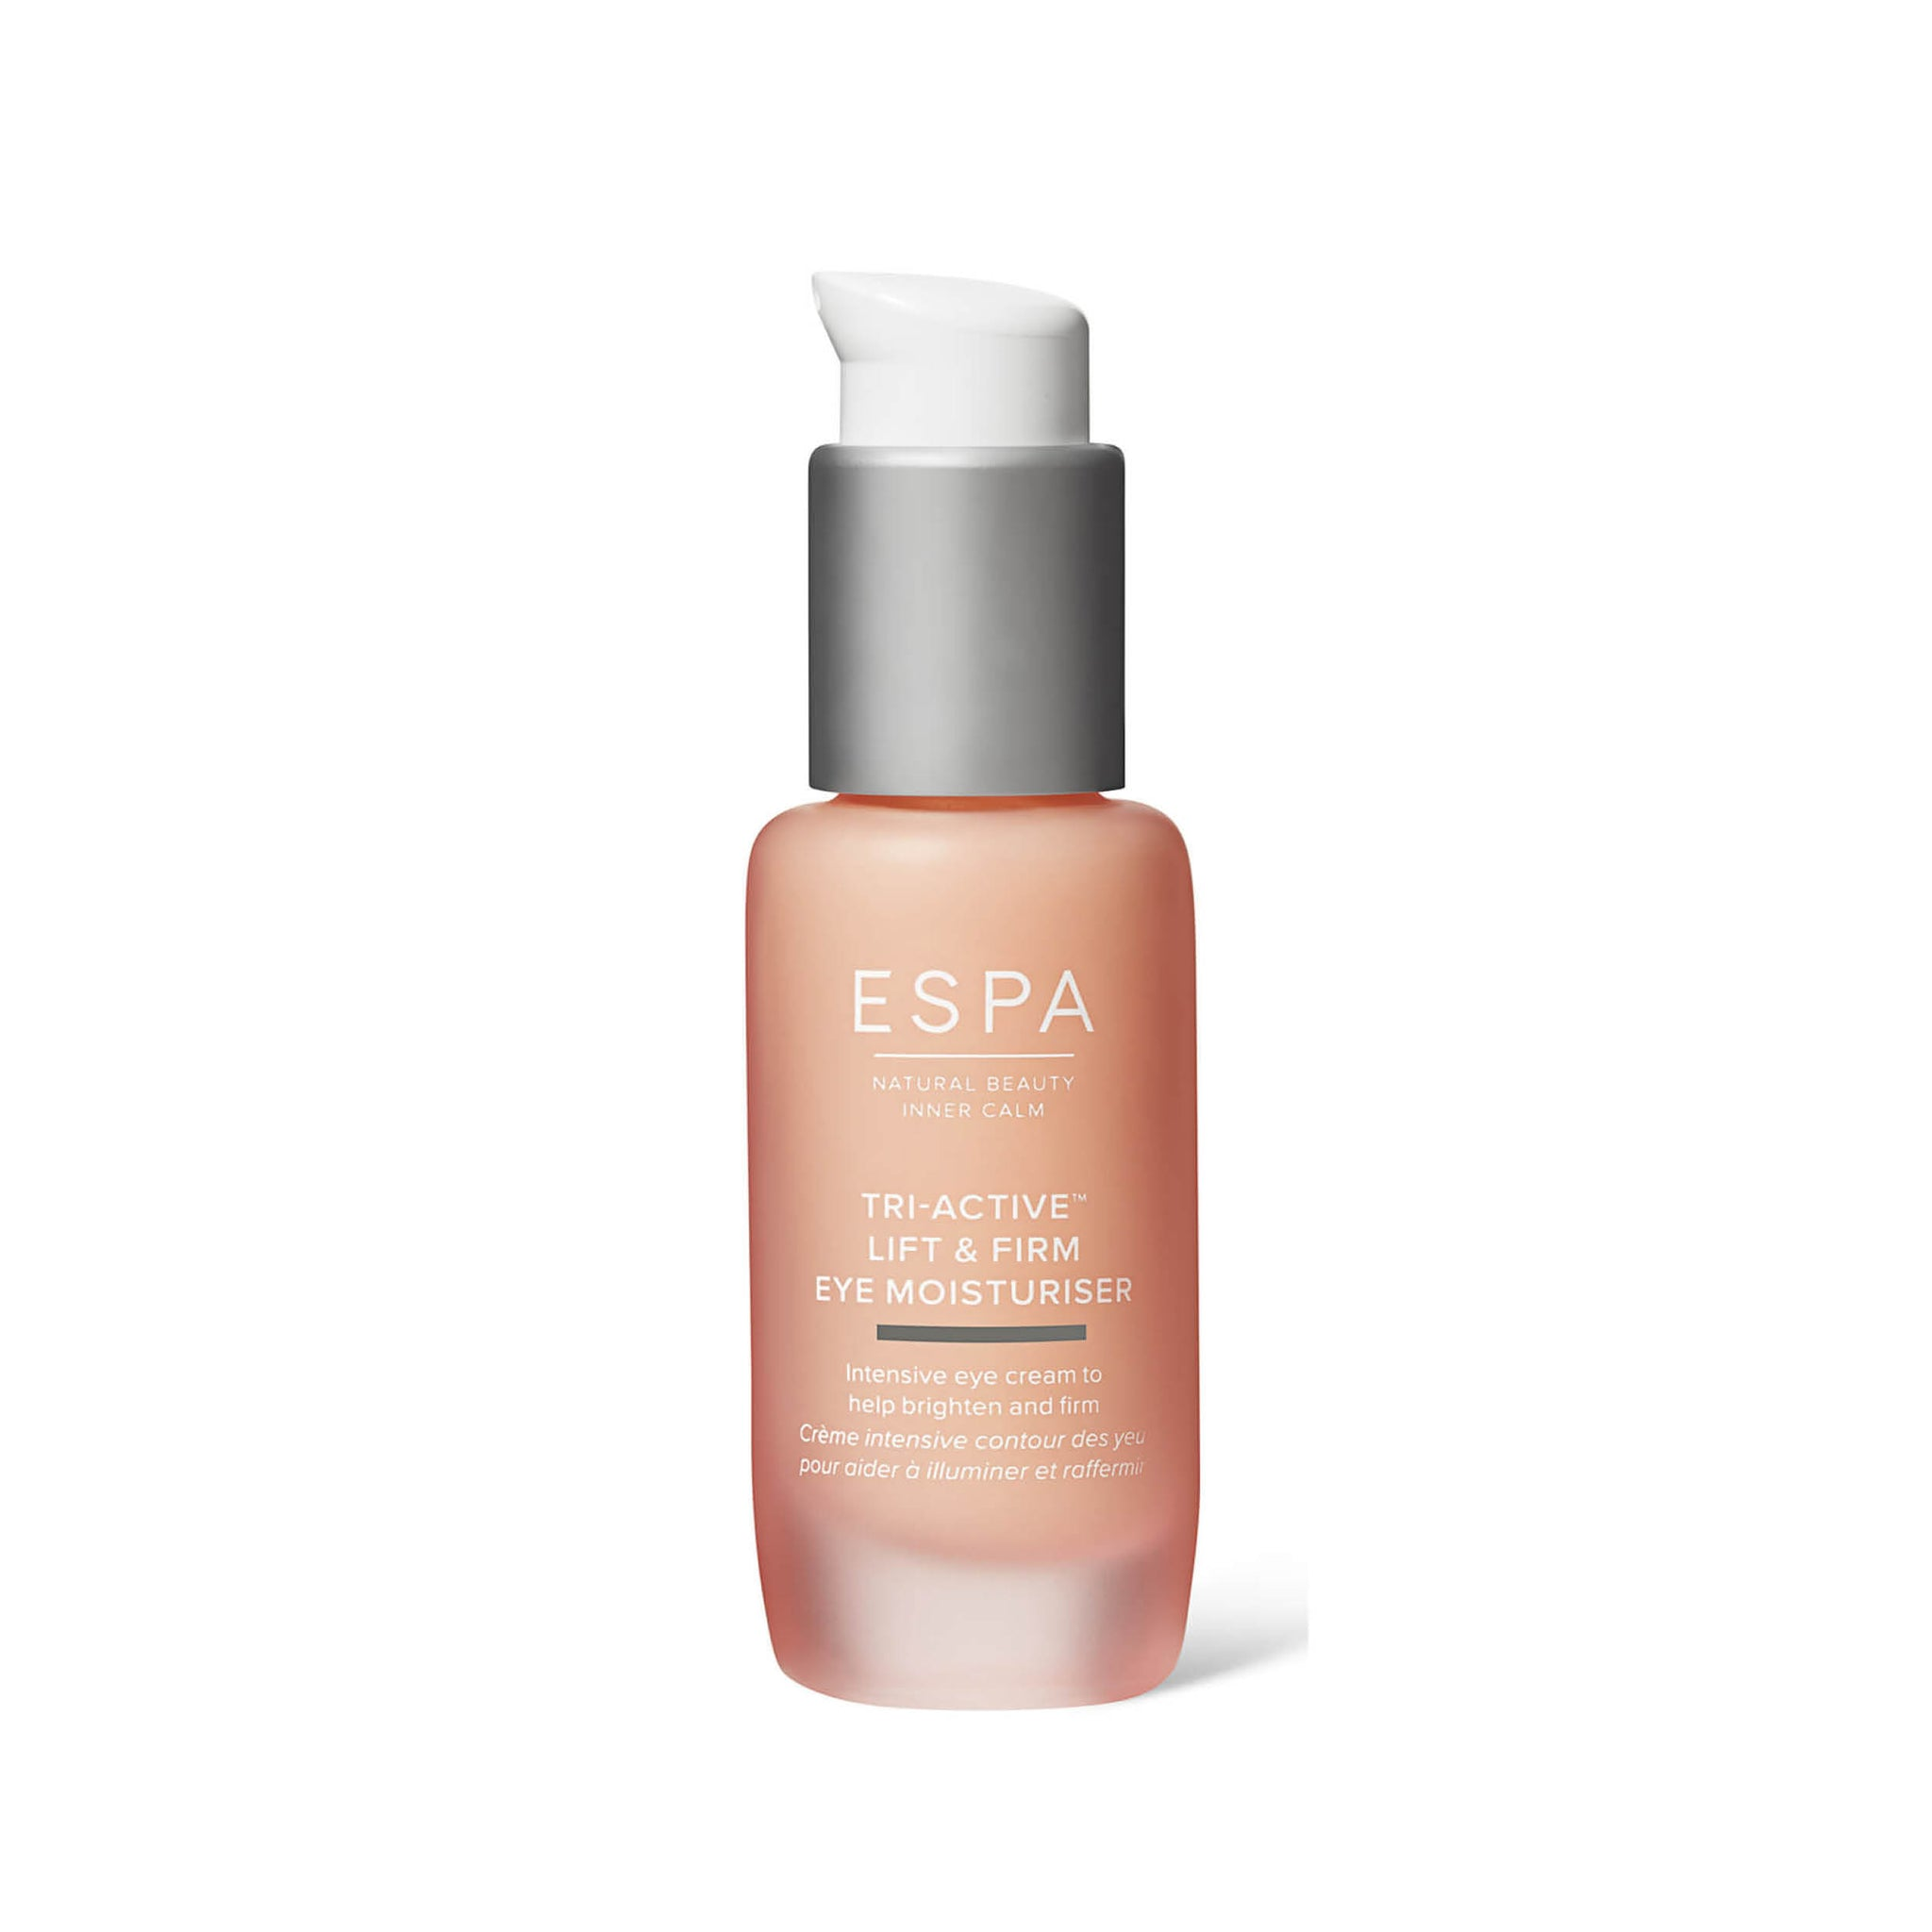 ESPA Tri-Active Lift & Firm Eye Moisturiser